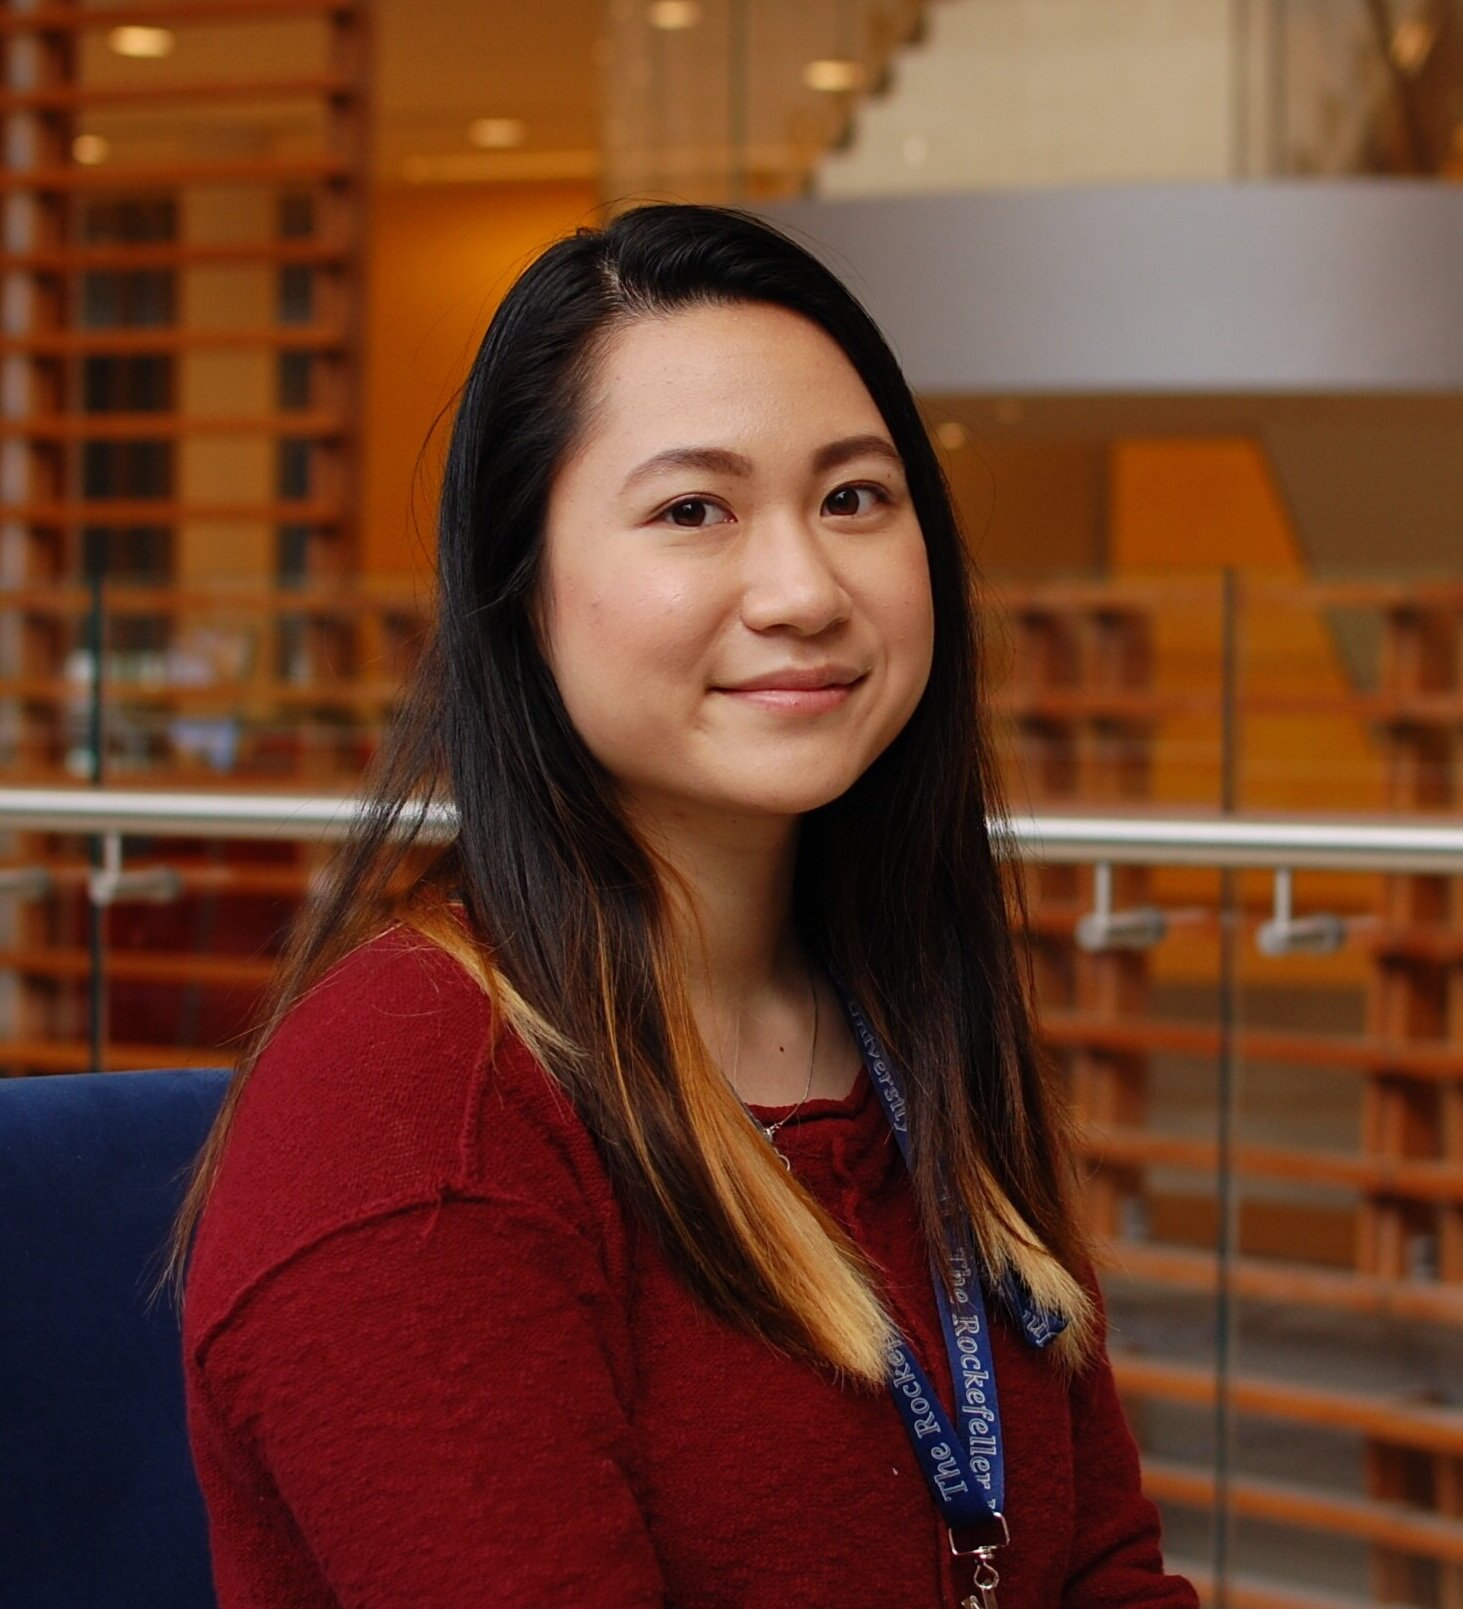 Joanna Yeung - jyeung@rockefeller.eduGraduate Fellow, David Rockefeller Graduate Program (Rotation)B.S. Pharmacology & Toxicology, University of Toronto, 2019Joanna has done metabolism research during her undergrad but is interested in exploring new fields during her rotation. She is new to the field of chromatin biology and will be working on optimizing a ChIP-seq protocol for the lab.